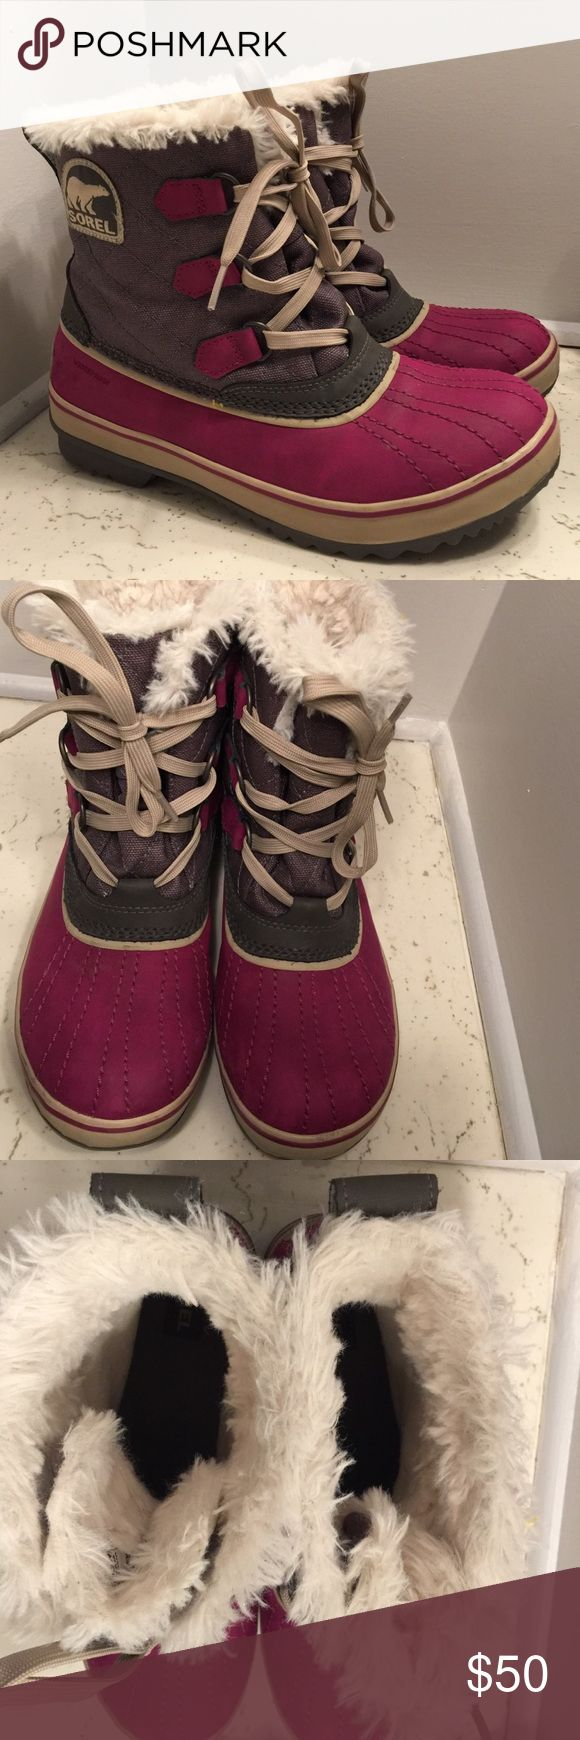 SALE Sorel waterproof faux fur lined boots SZ 9 Sorel waterproof faux fur lined boots SZ 9. Close to new condition, not worn outside.  No box.  No wear on soles. Sorel Shoes Winter & Rain Boots